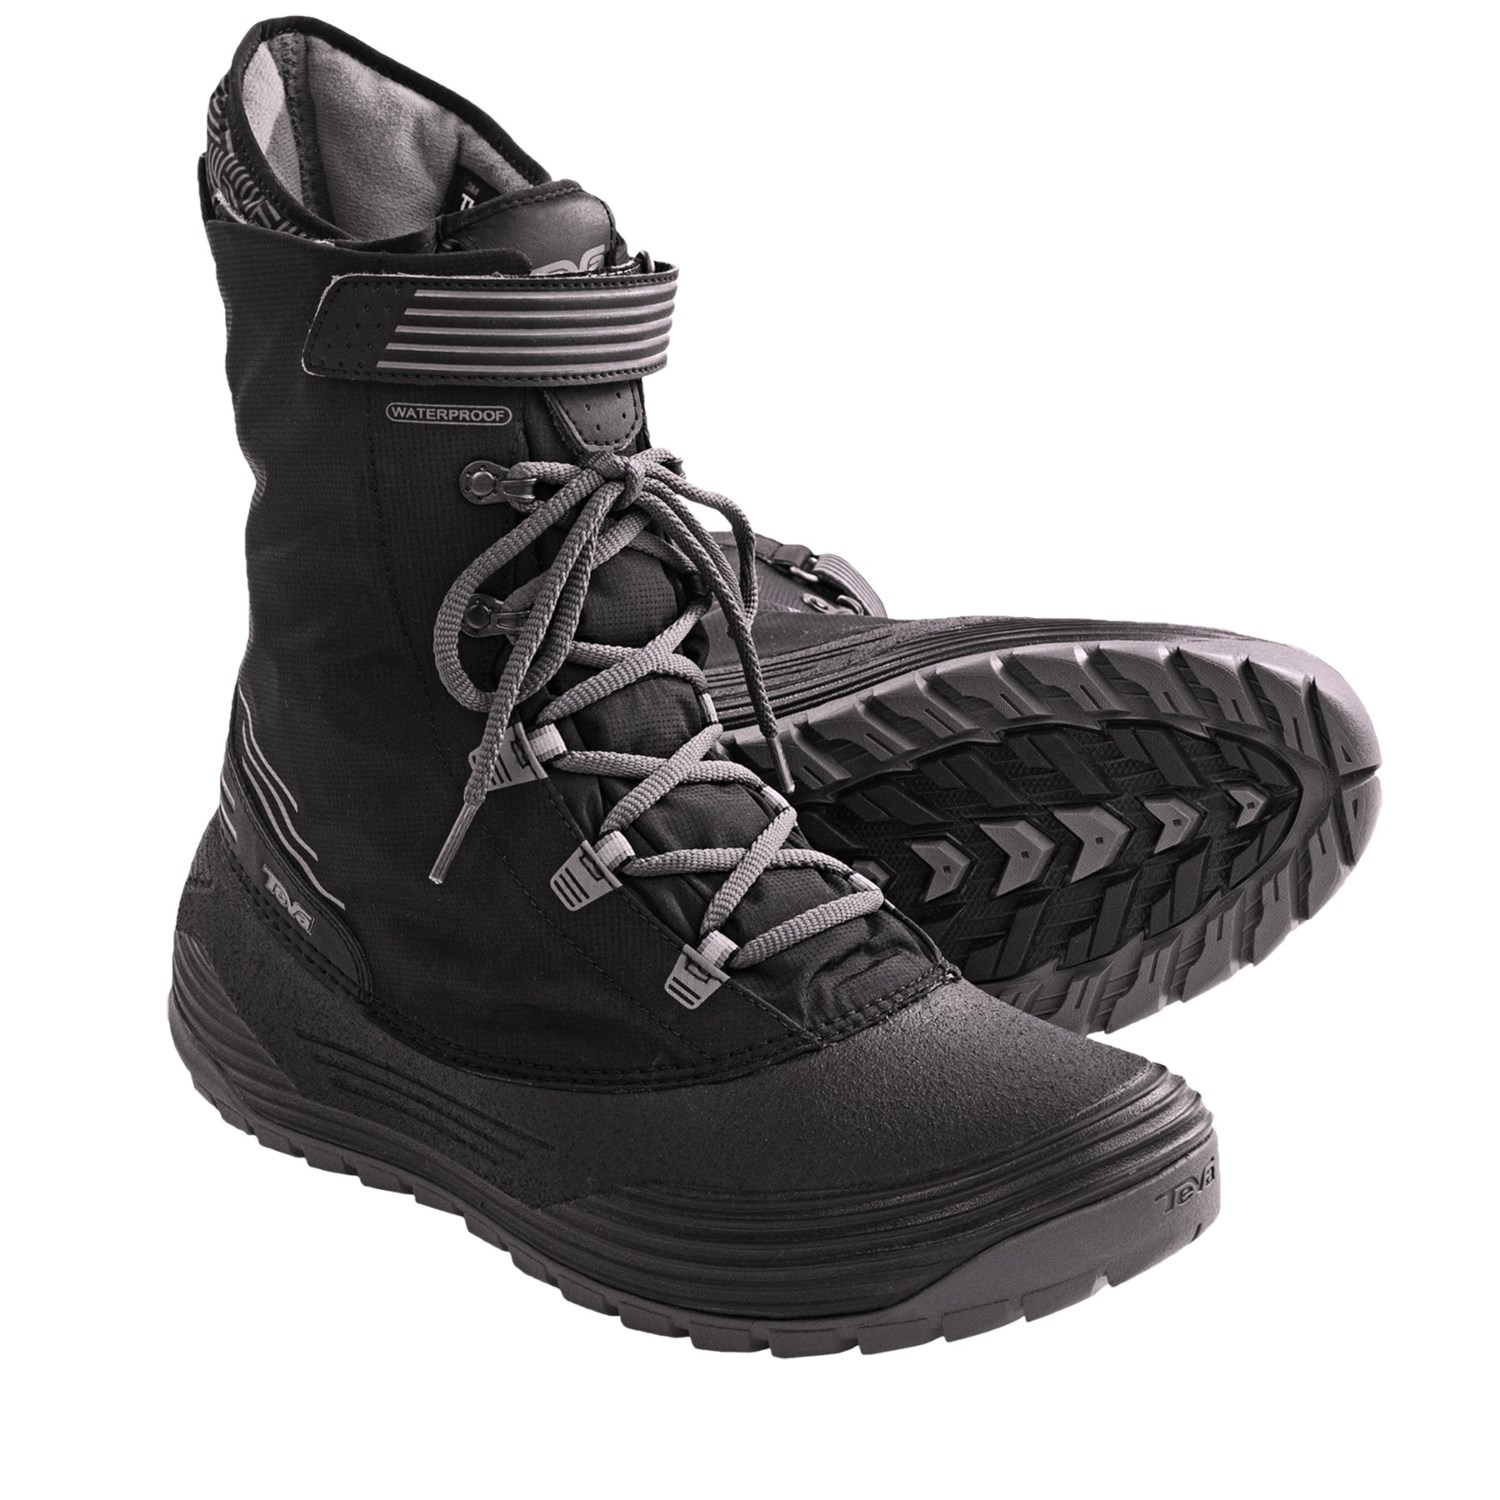 Mens Snow Boots Clearance Australia | Homewood Mountain Ski Resort